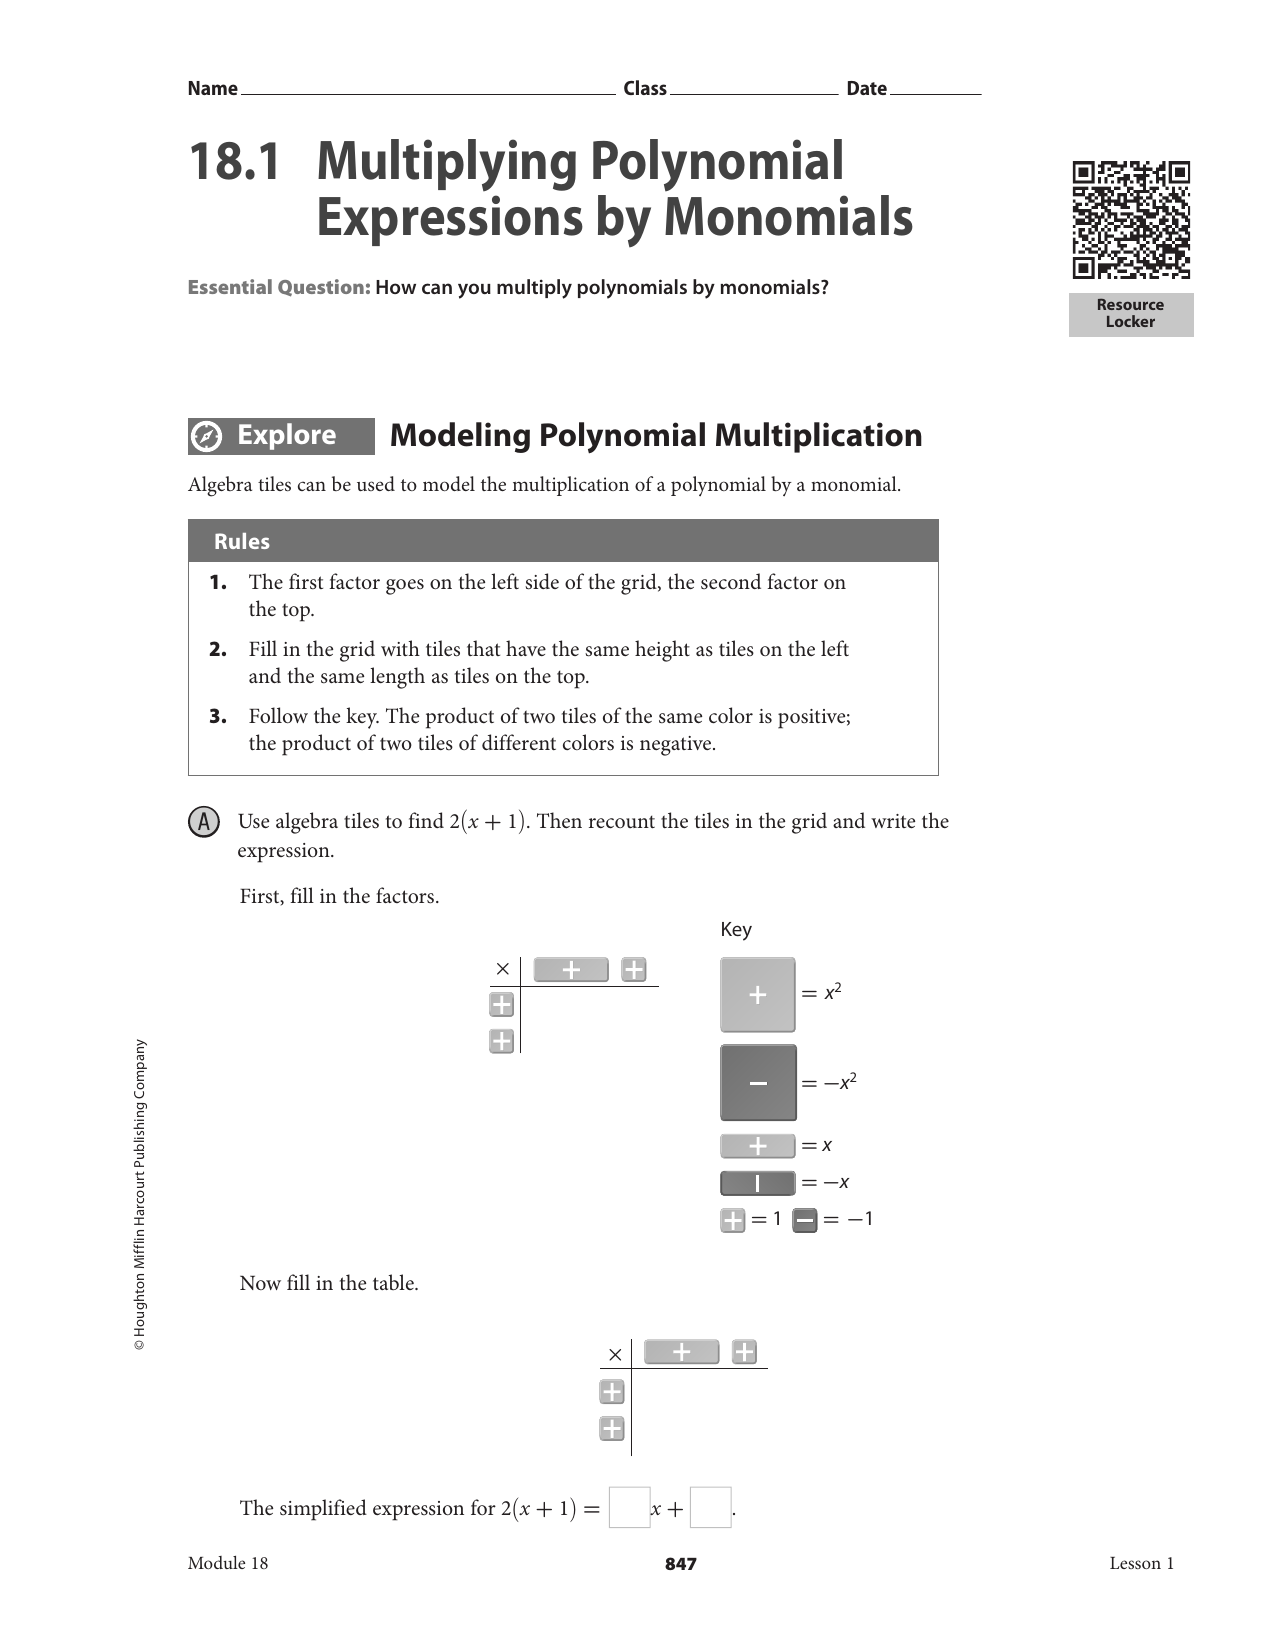 18.1 Multiplying Polynomial Expressionsmonomials